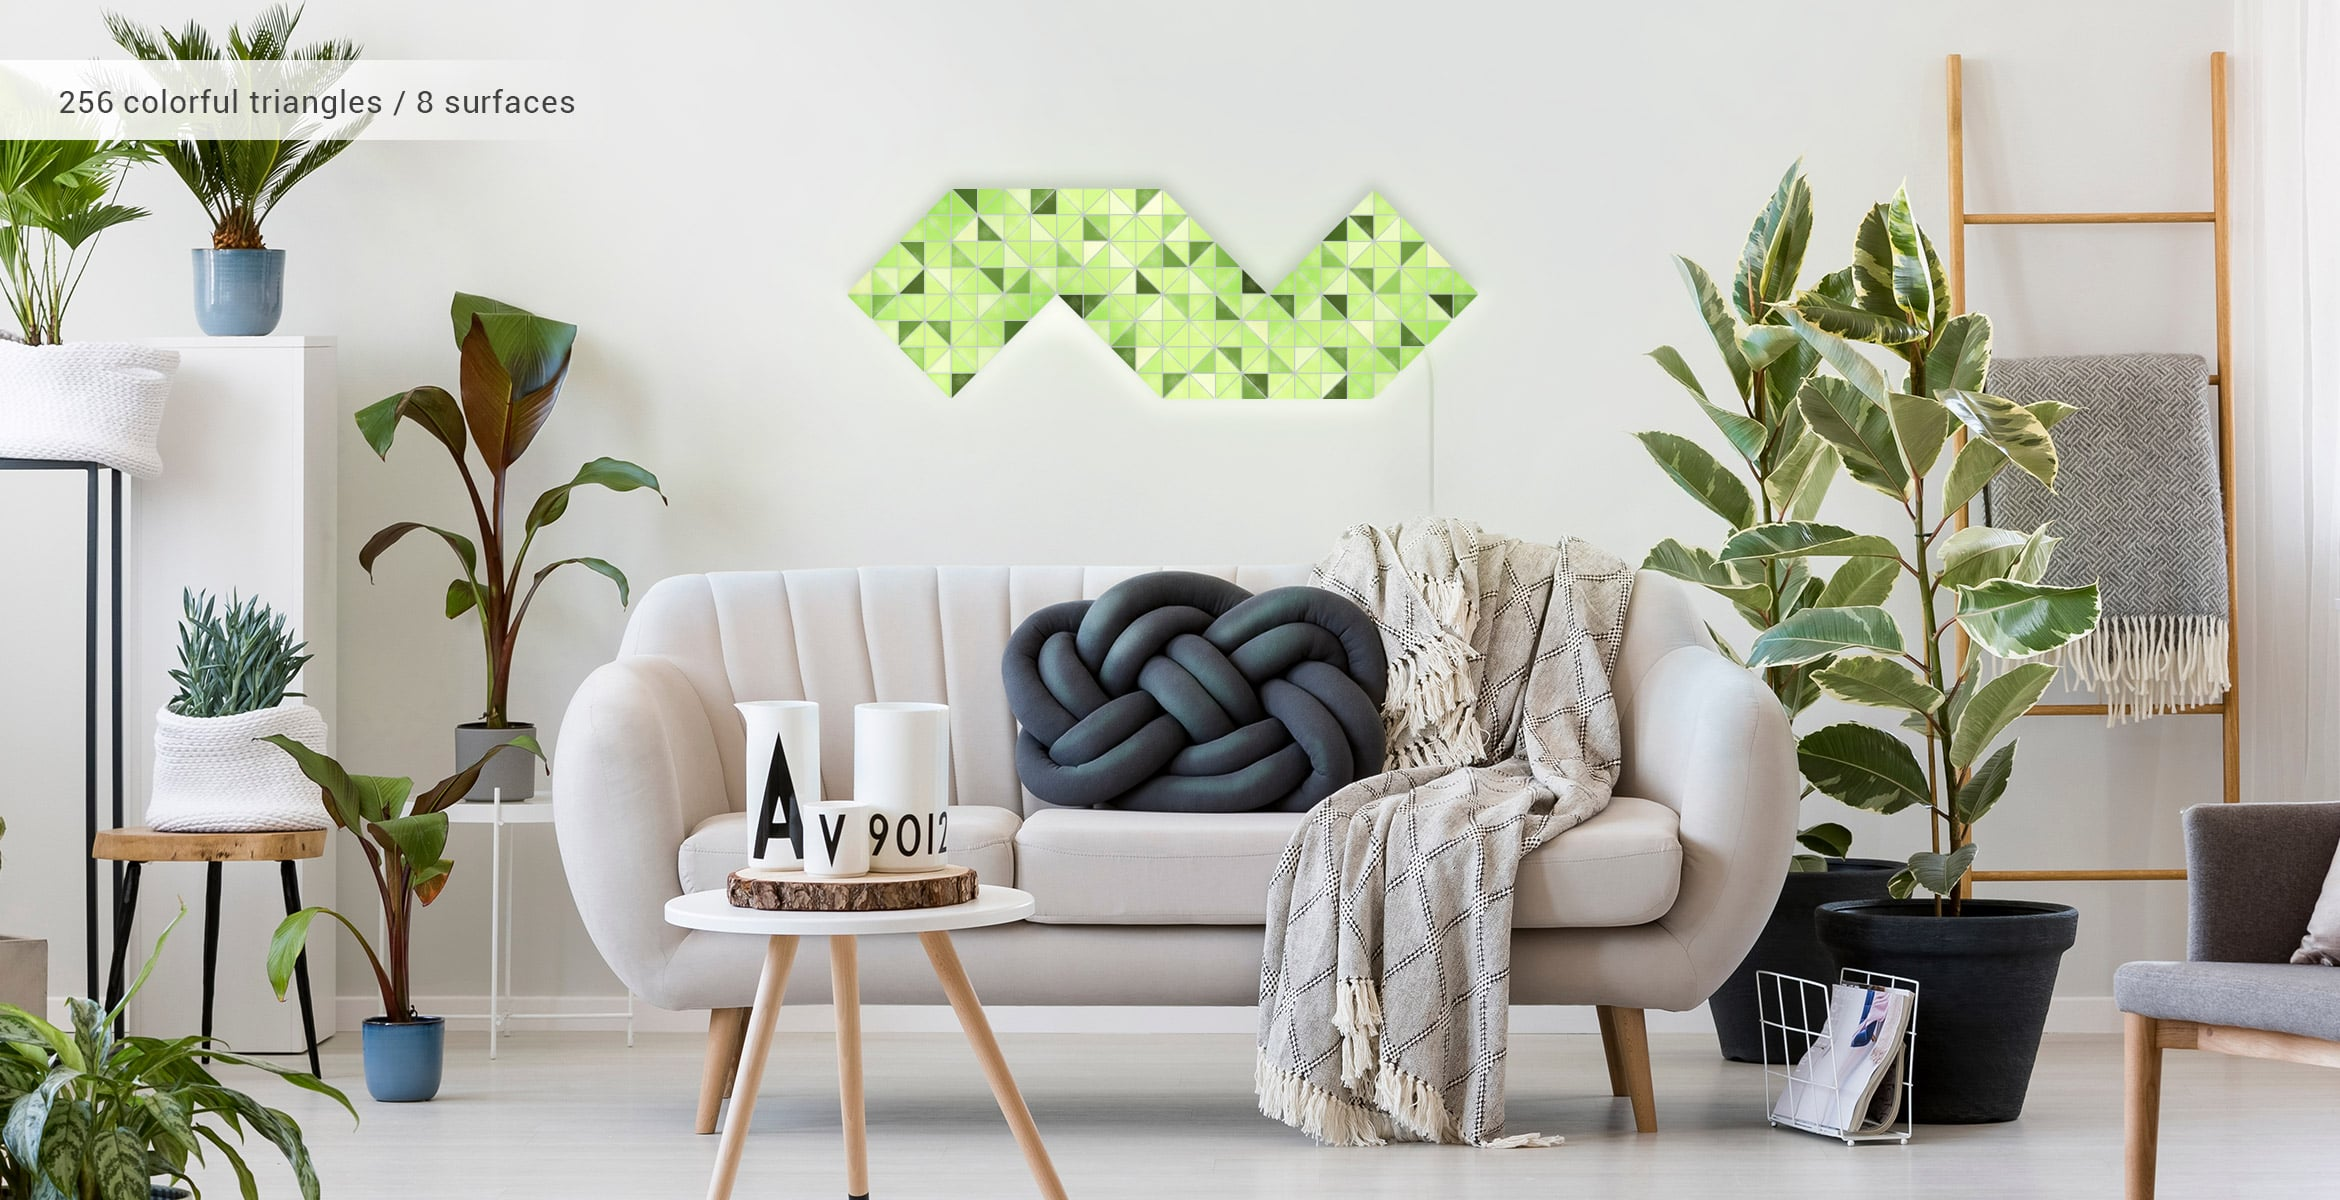 Snake shape, assembled from 8 LaMetric SKY smart light surfaces, in a stylish living room